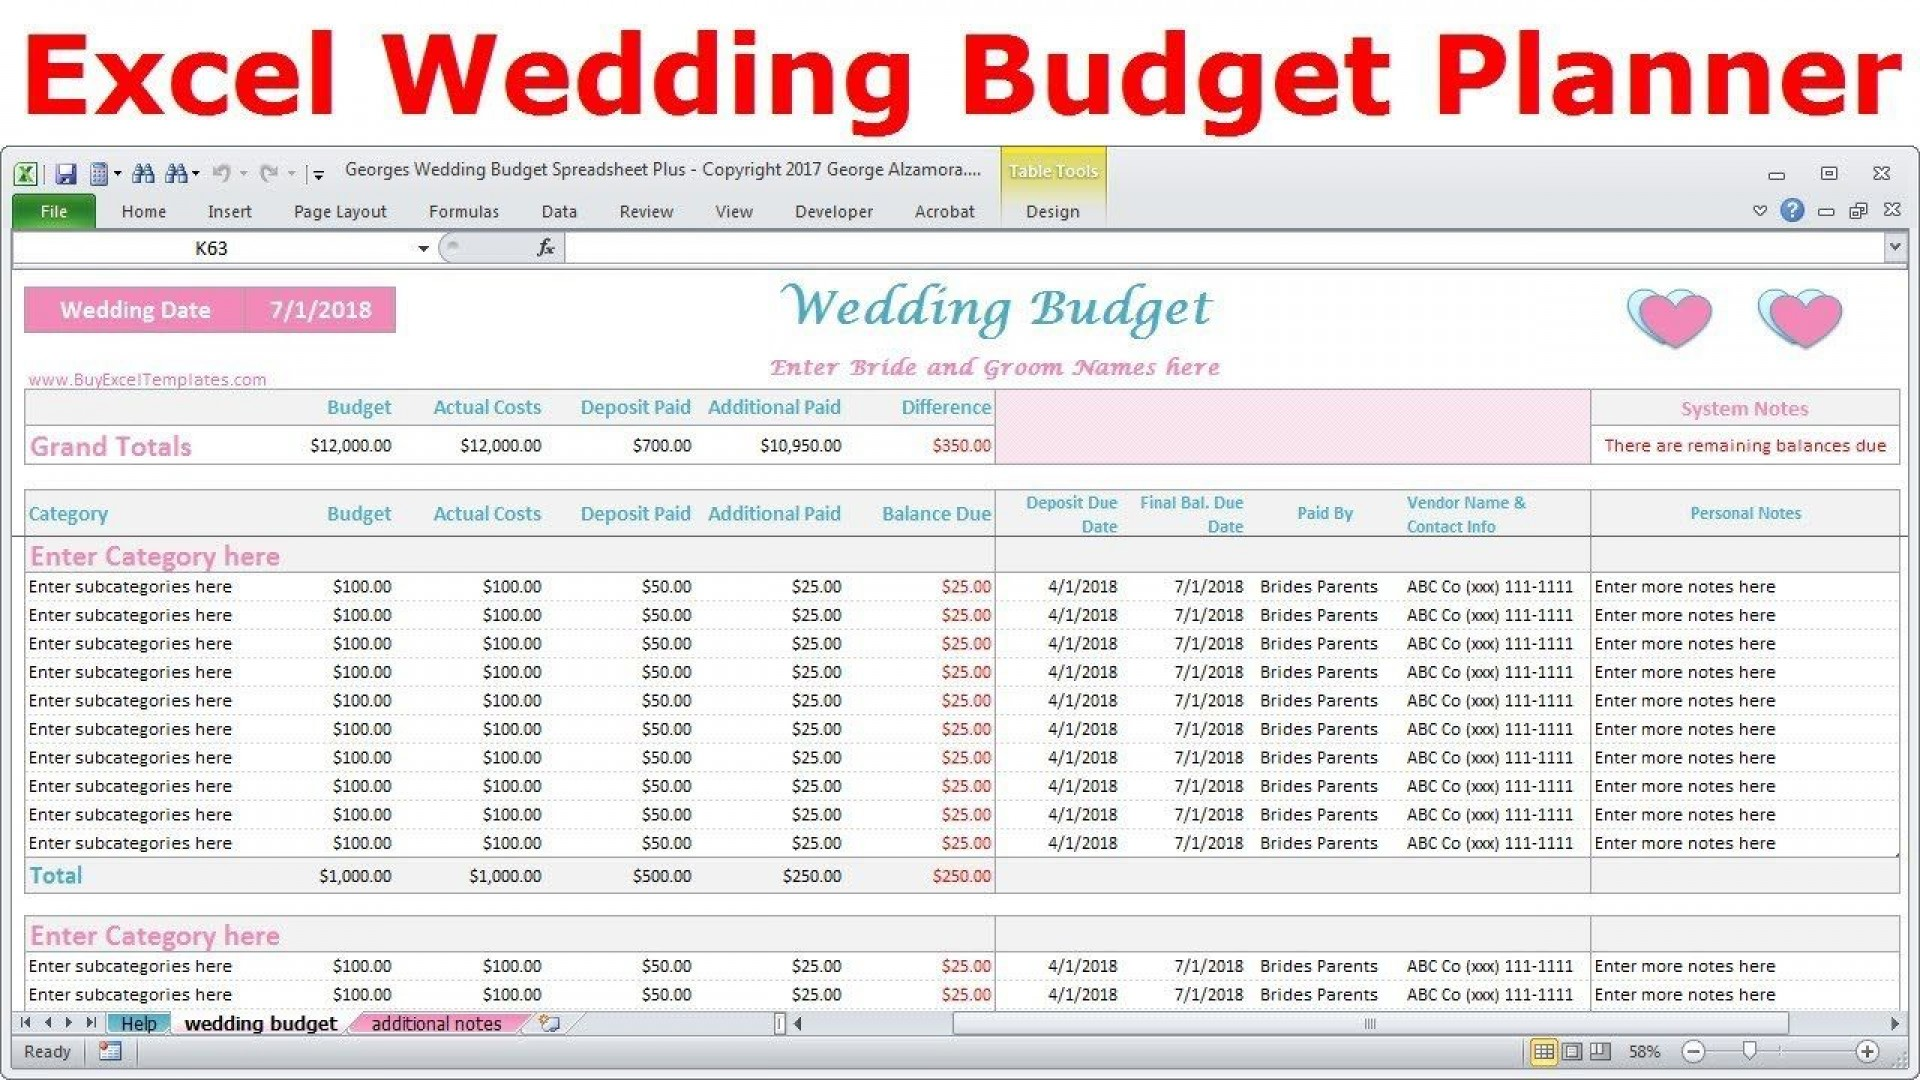 006 Breathtaking Budget Tracker Excel Template Picture  Wedding Personal Expense Free Project1920